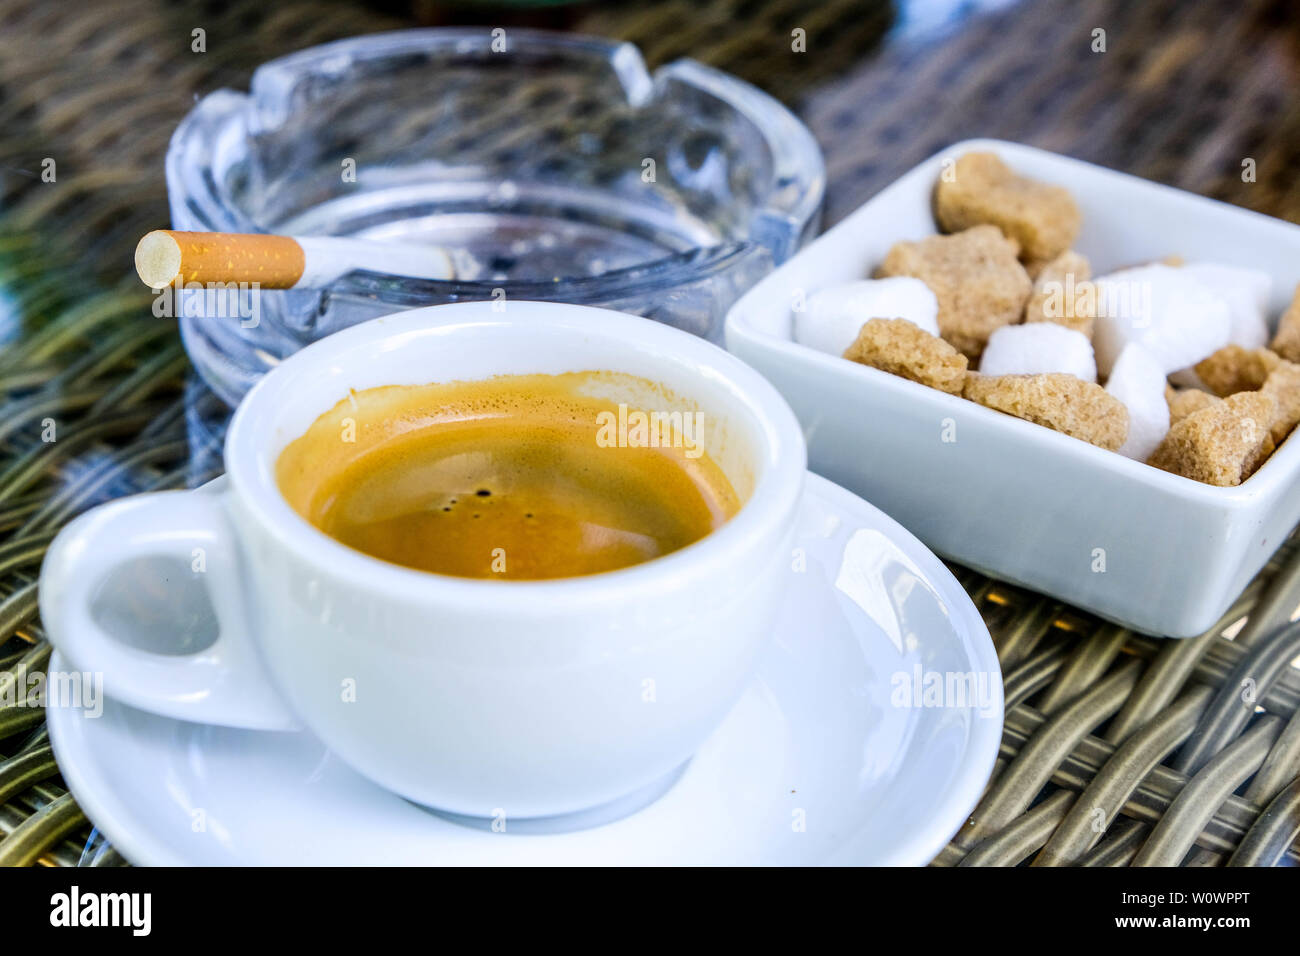 a2b5e76f31e Cup of Traditional Italian Style Espresso Coffee With A Sugar Bowl on a  Table Top and